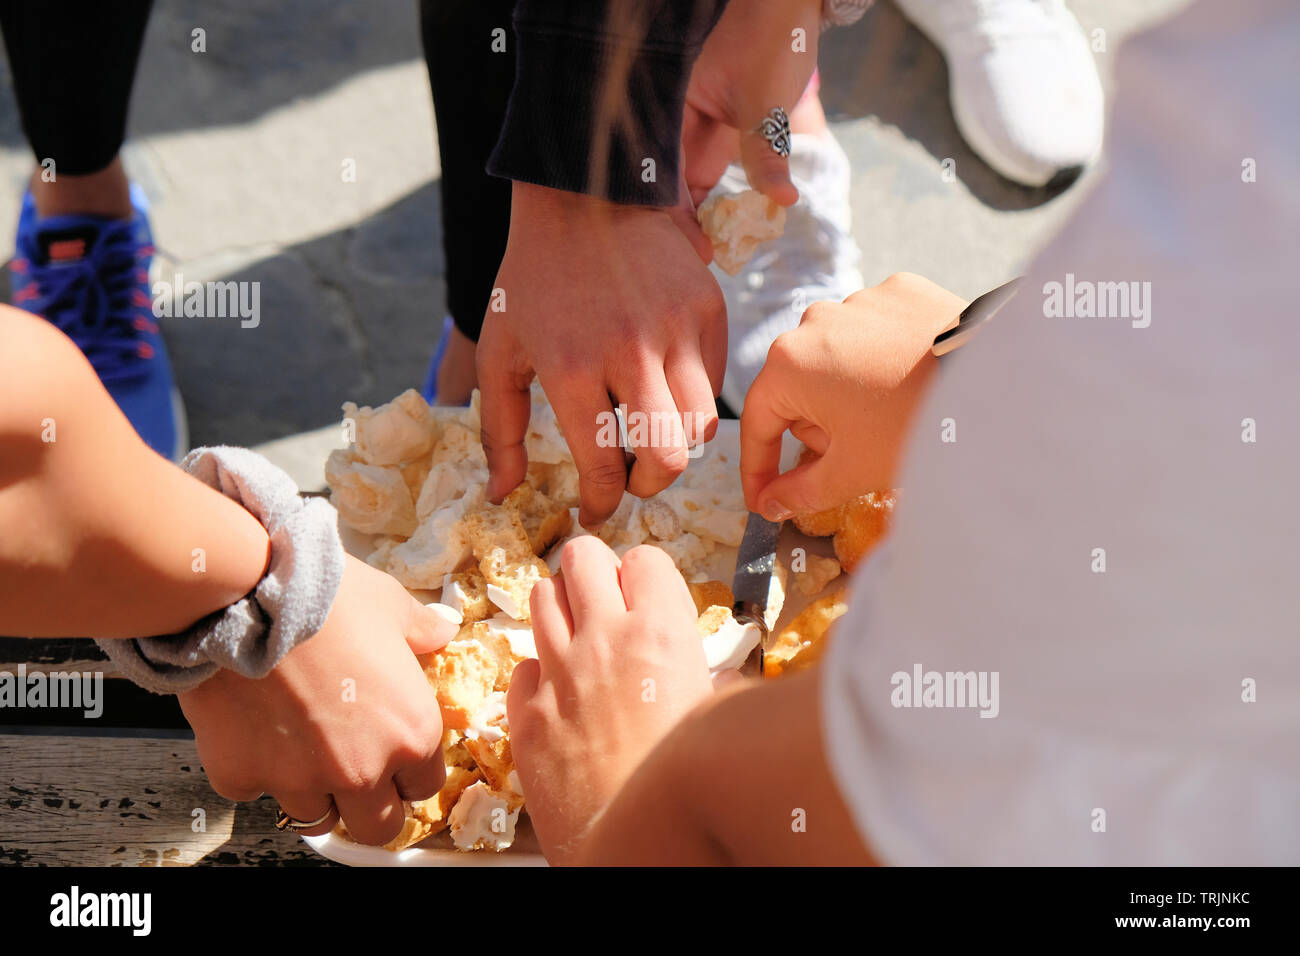 Hands of three people reaching in to get some pieces of bread meant for all to share; concept of sharing, breaking bread, togetherness, generosity. - Stock Image